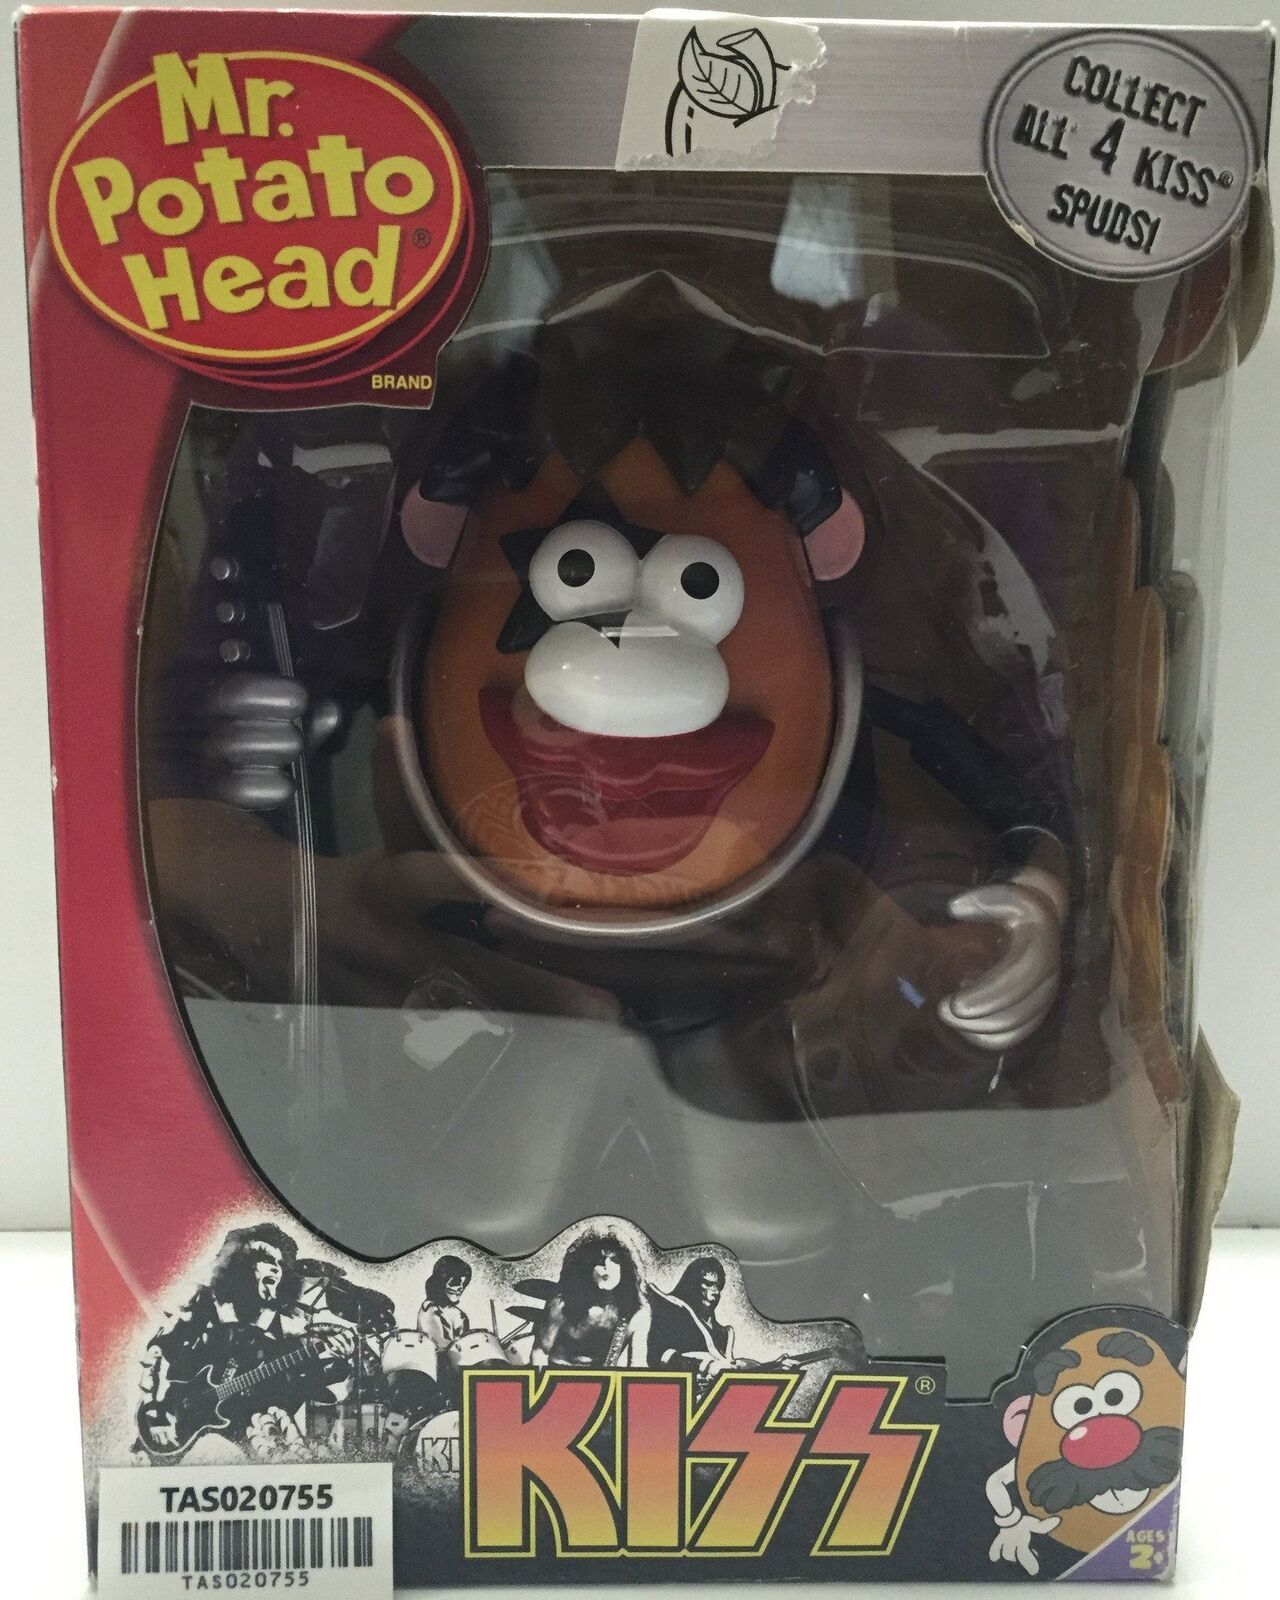 TAS020755  - Mr. Potato Head Brand - KISS Spud